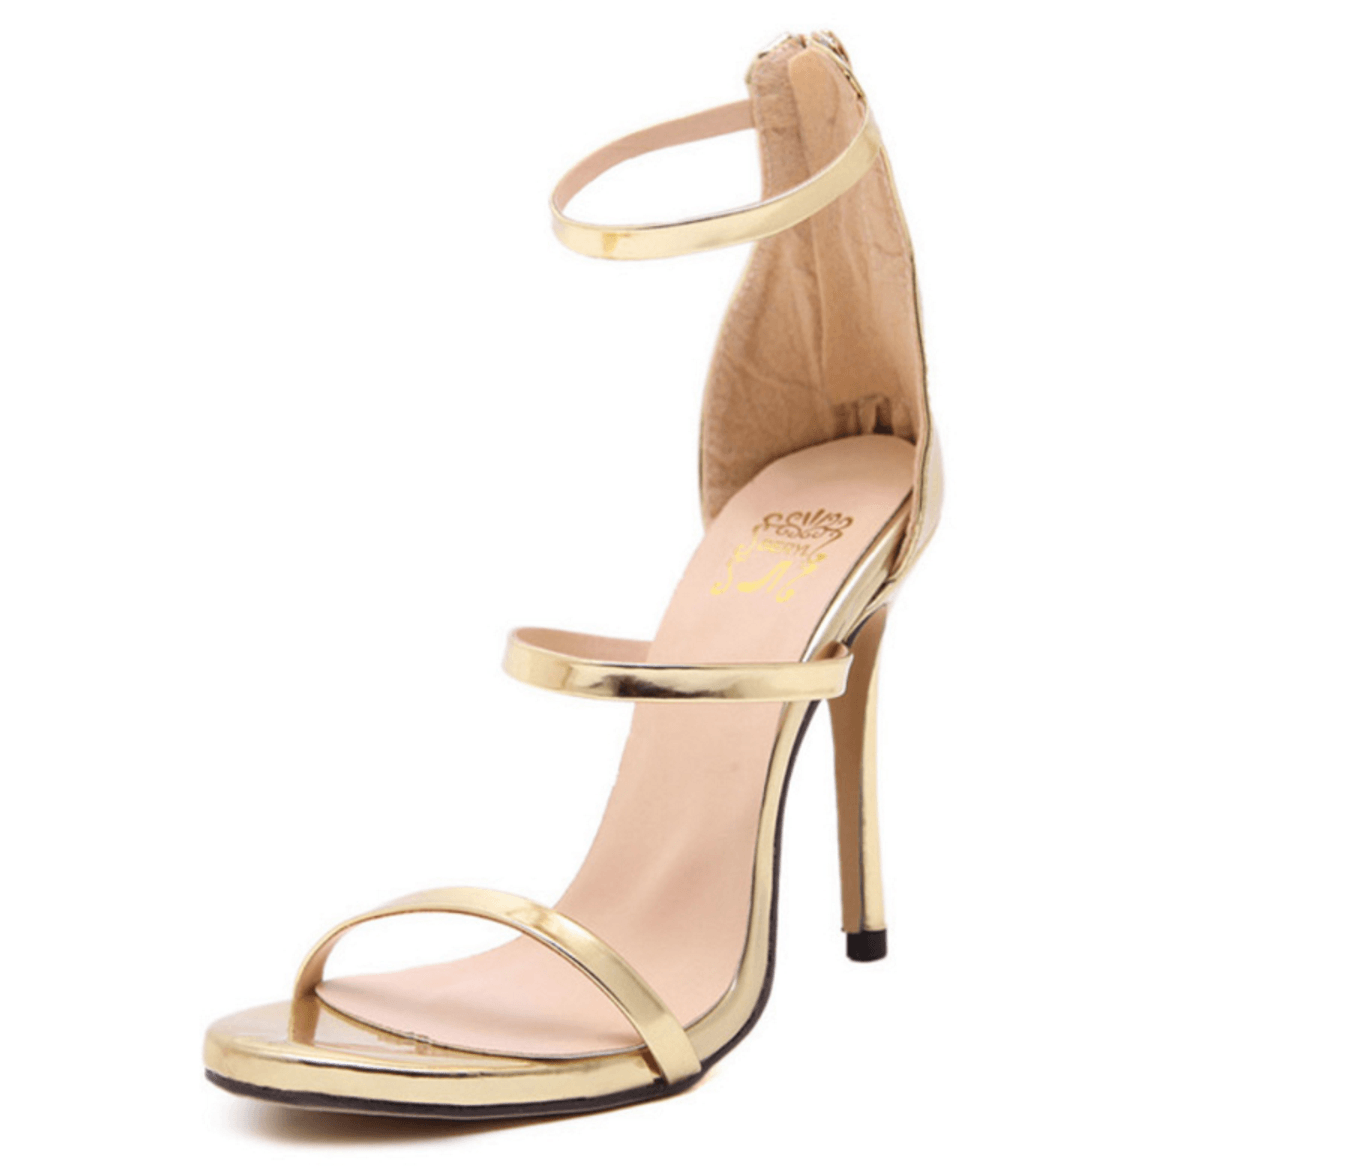 fc7a3468be39 ... Gold color patent leather high heel sandals strappy ankle-wrap style ...